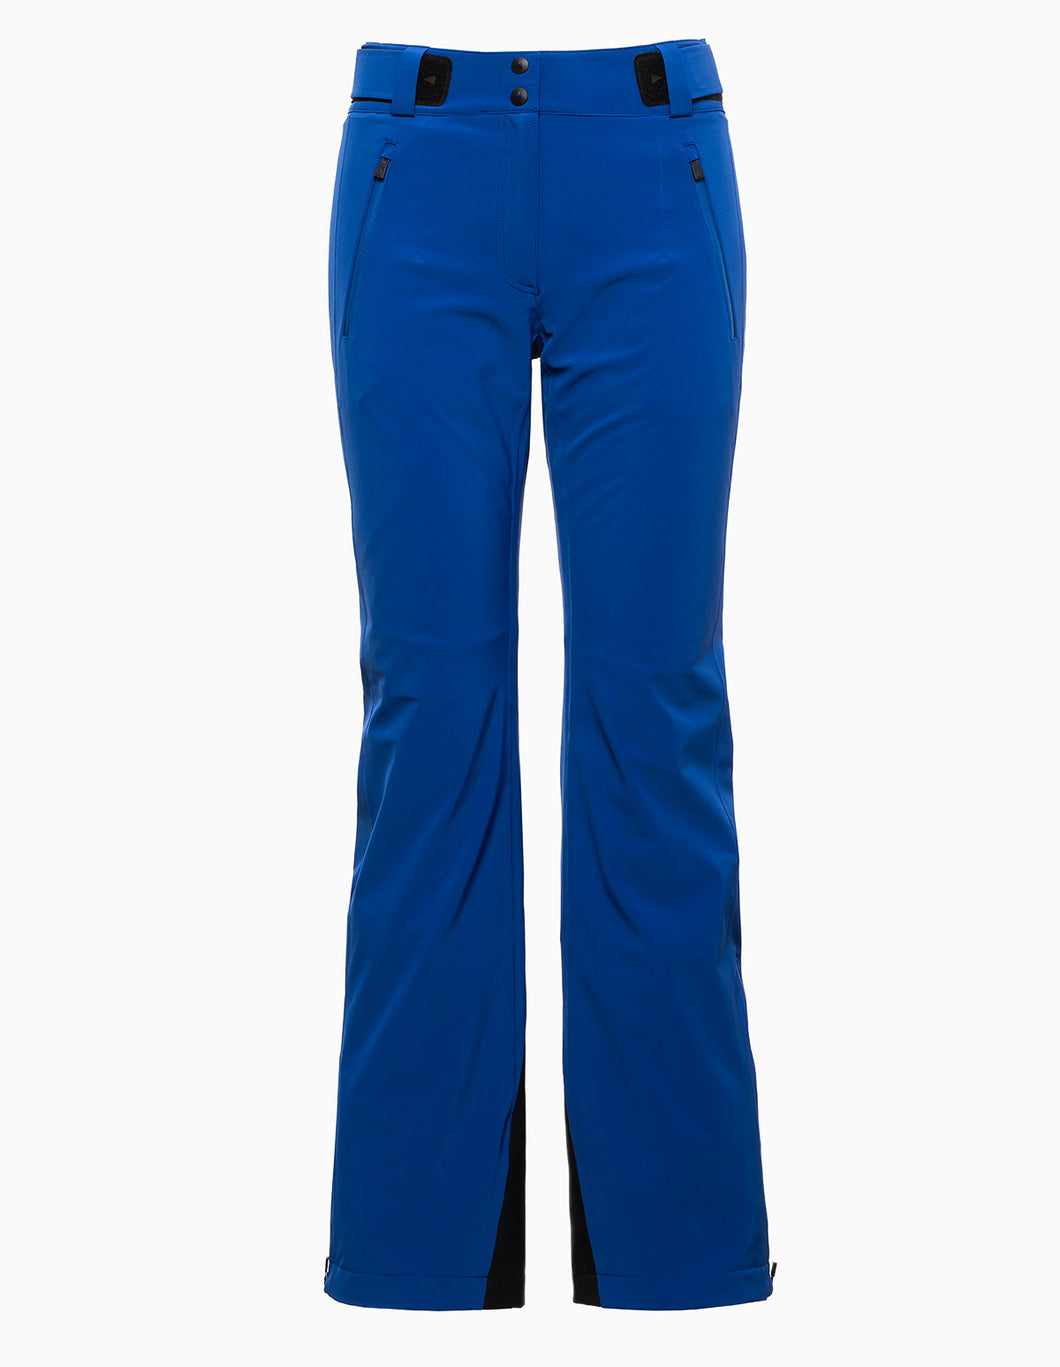 Women Team Aztech Pants - Blue